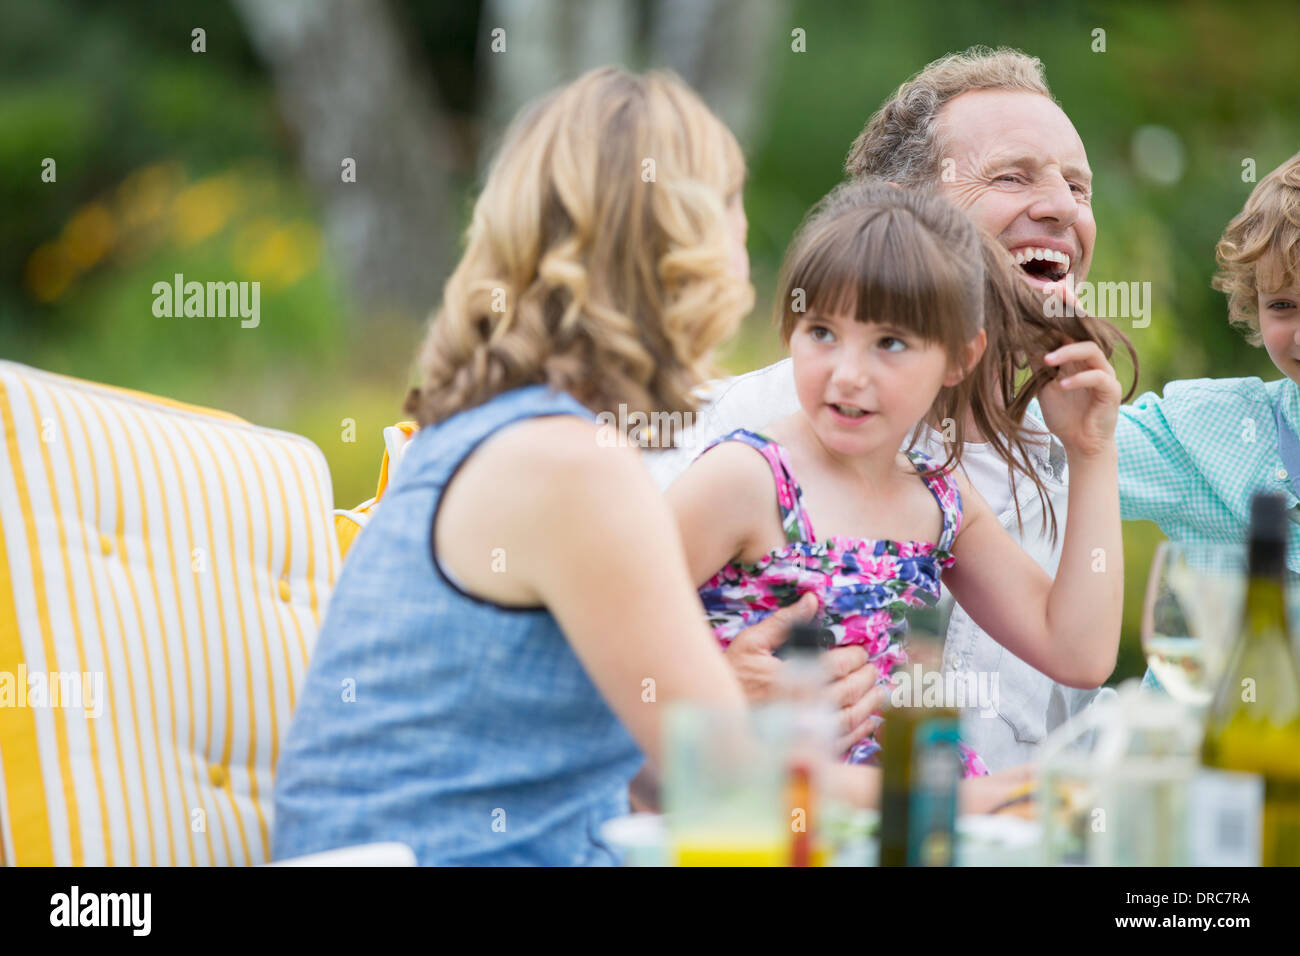 Family eating on patio Photo Stock